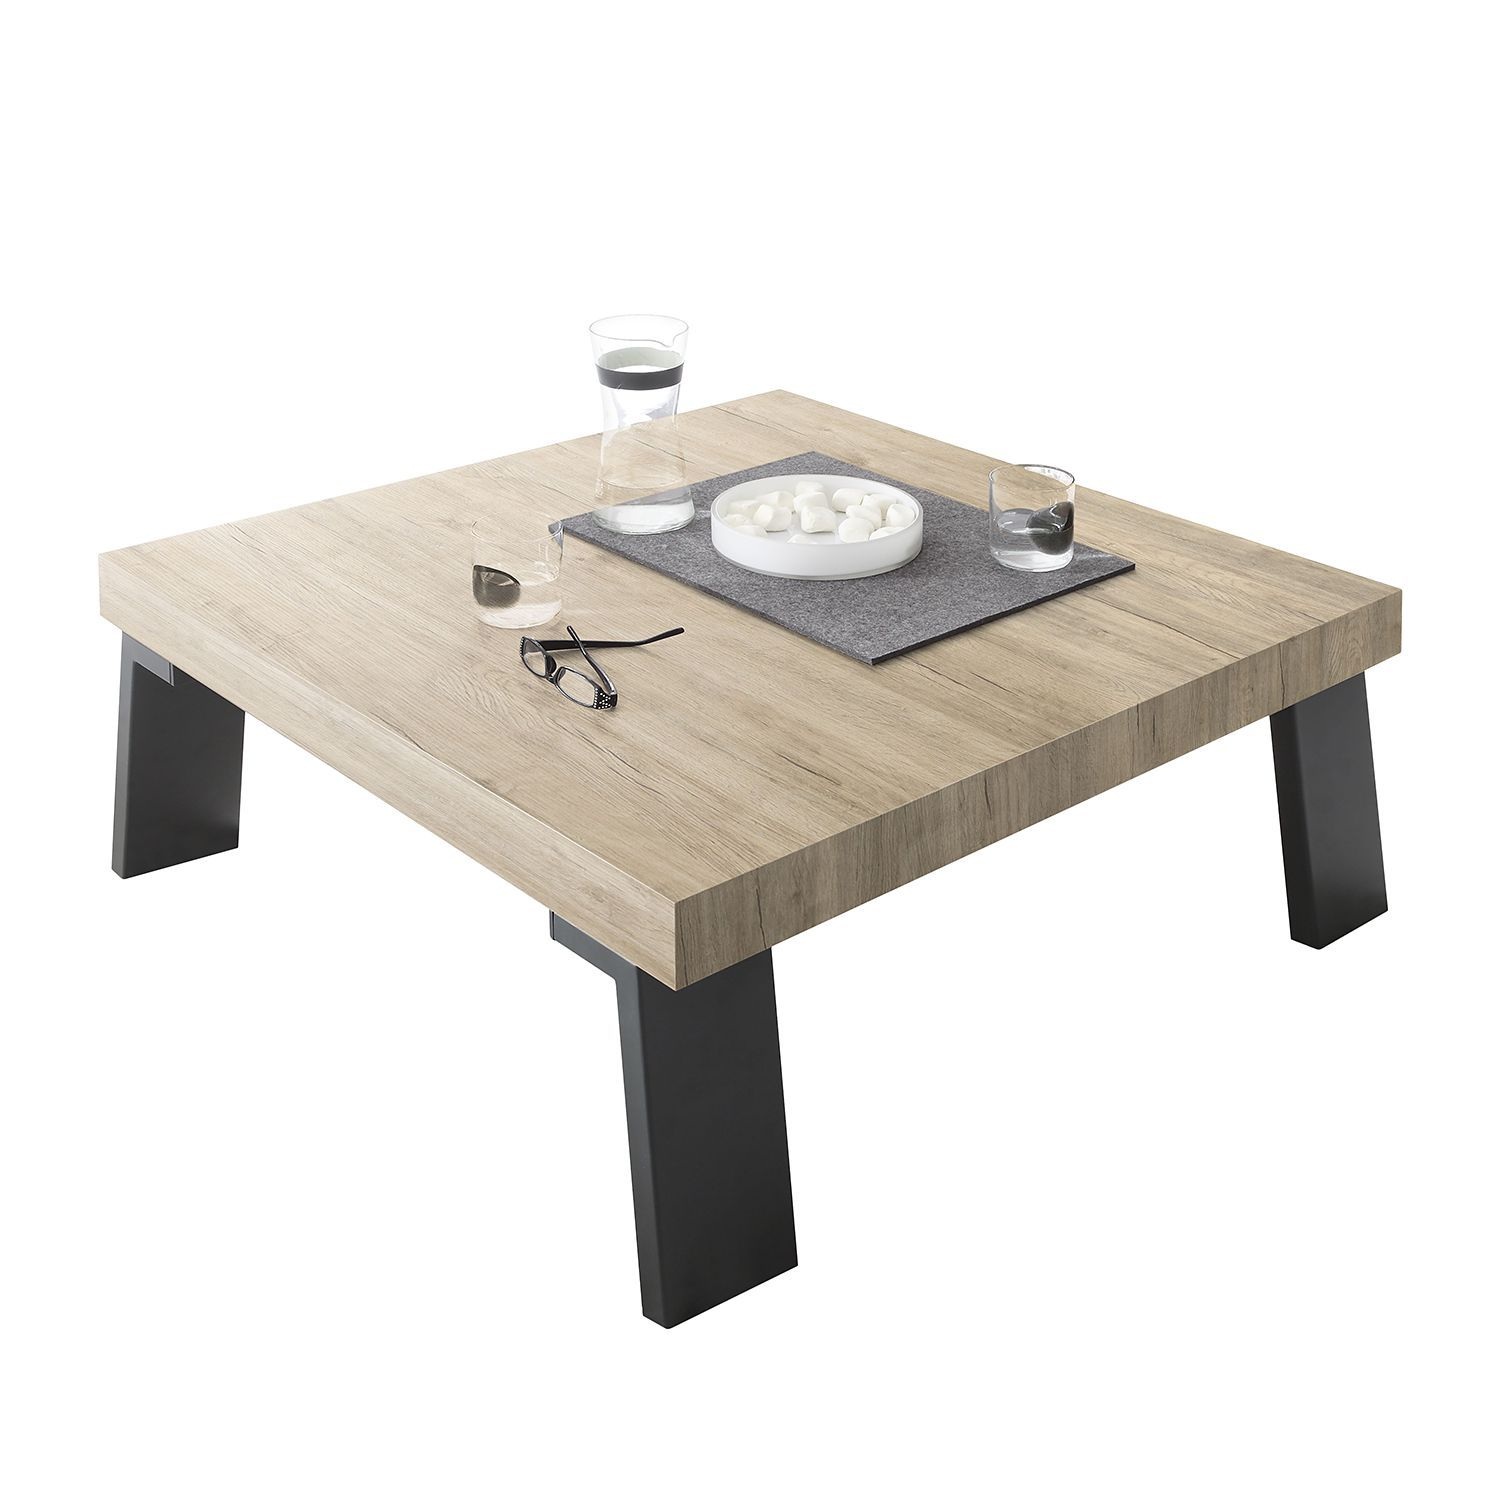 Couchtisch Elliot Pin By Ladendirekt On Tische Table Furniture Table Furniture